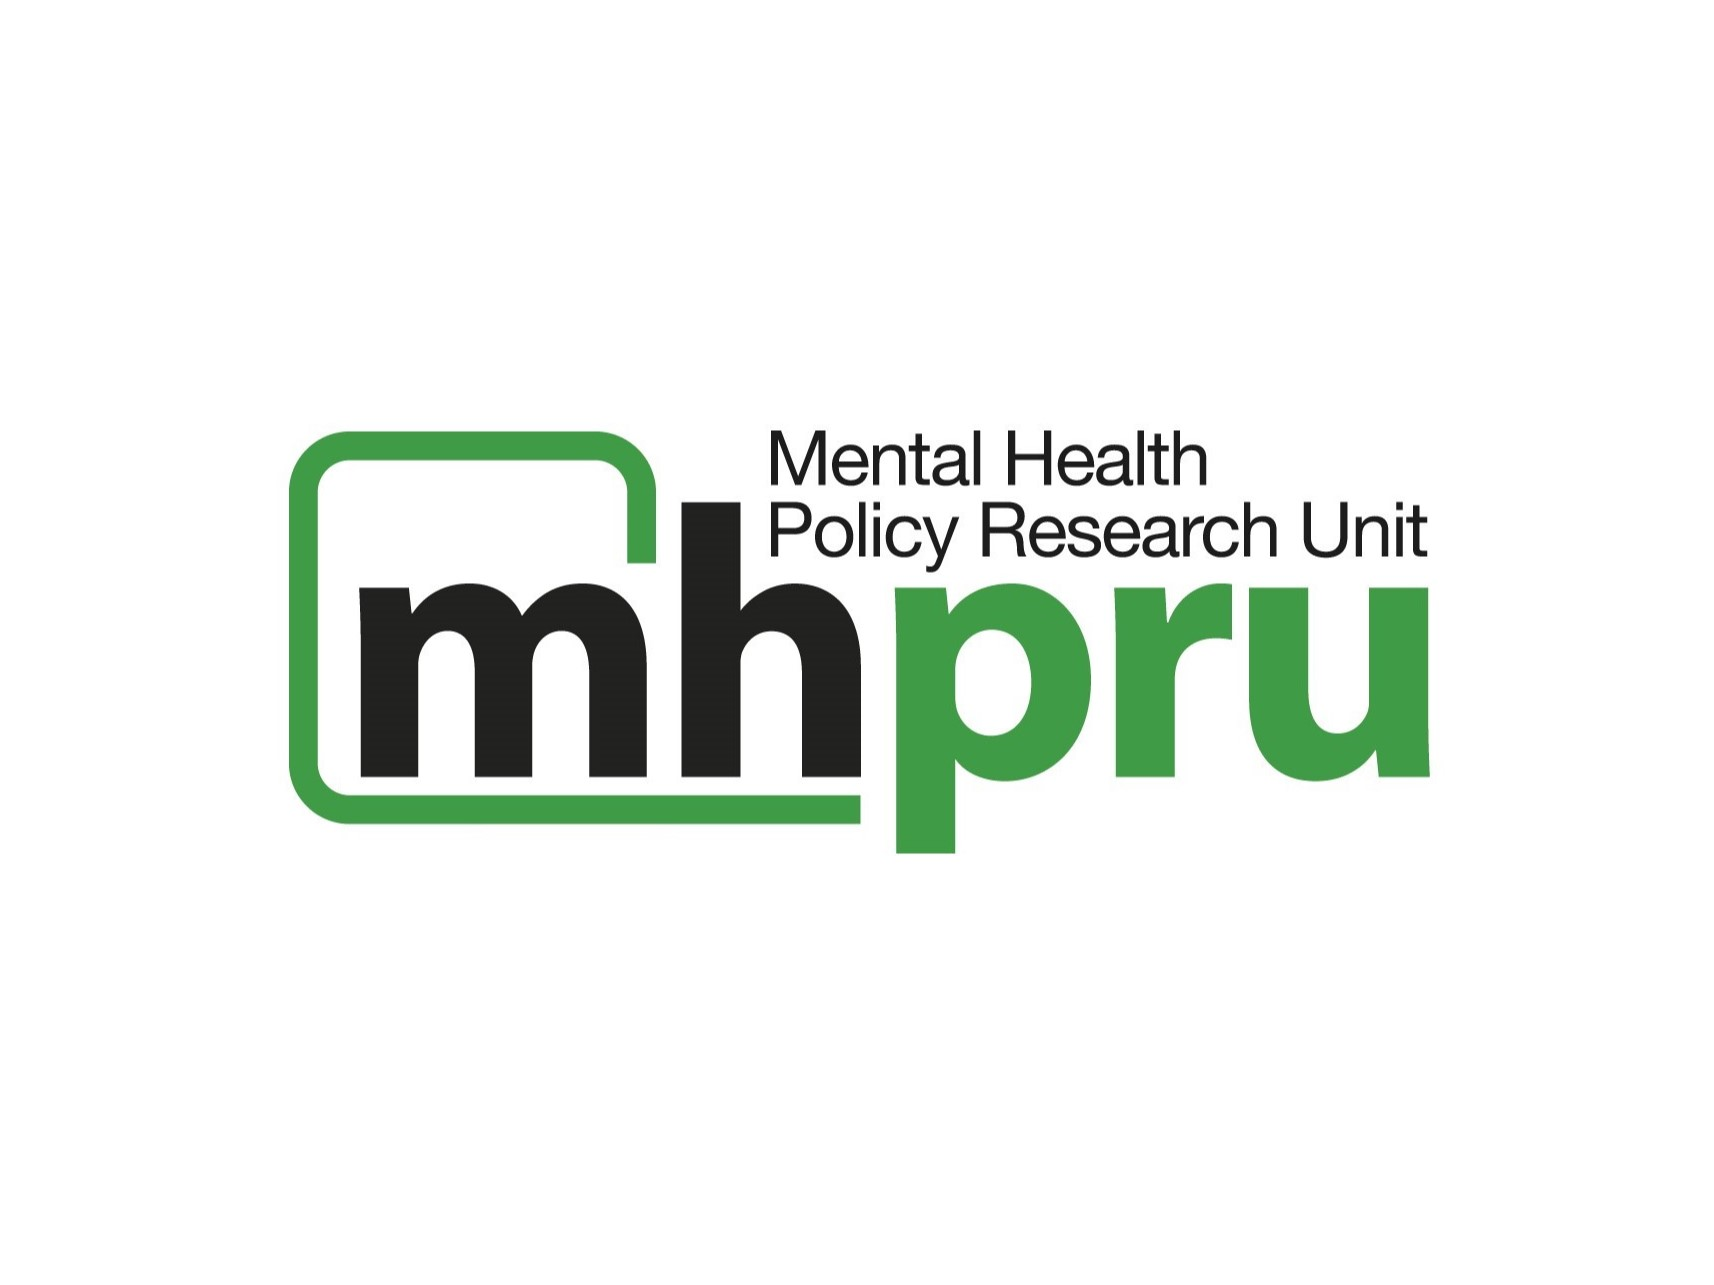 Mental Health Policy Research unit logo